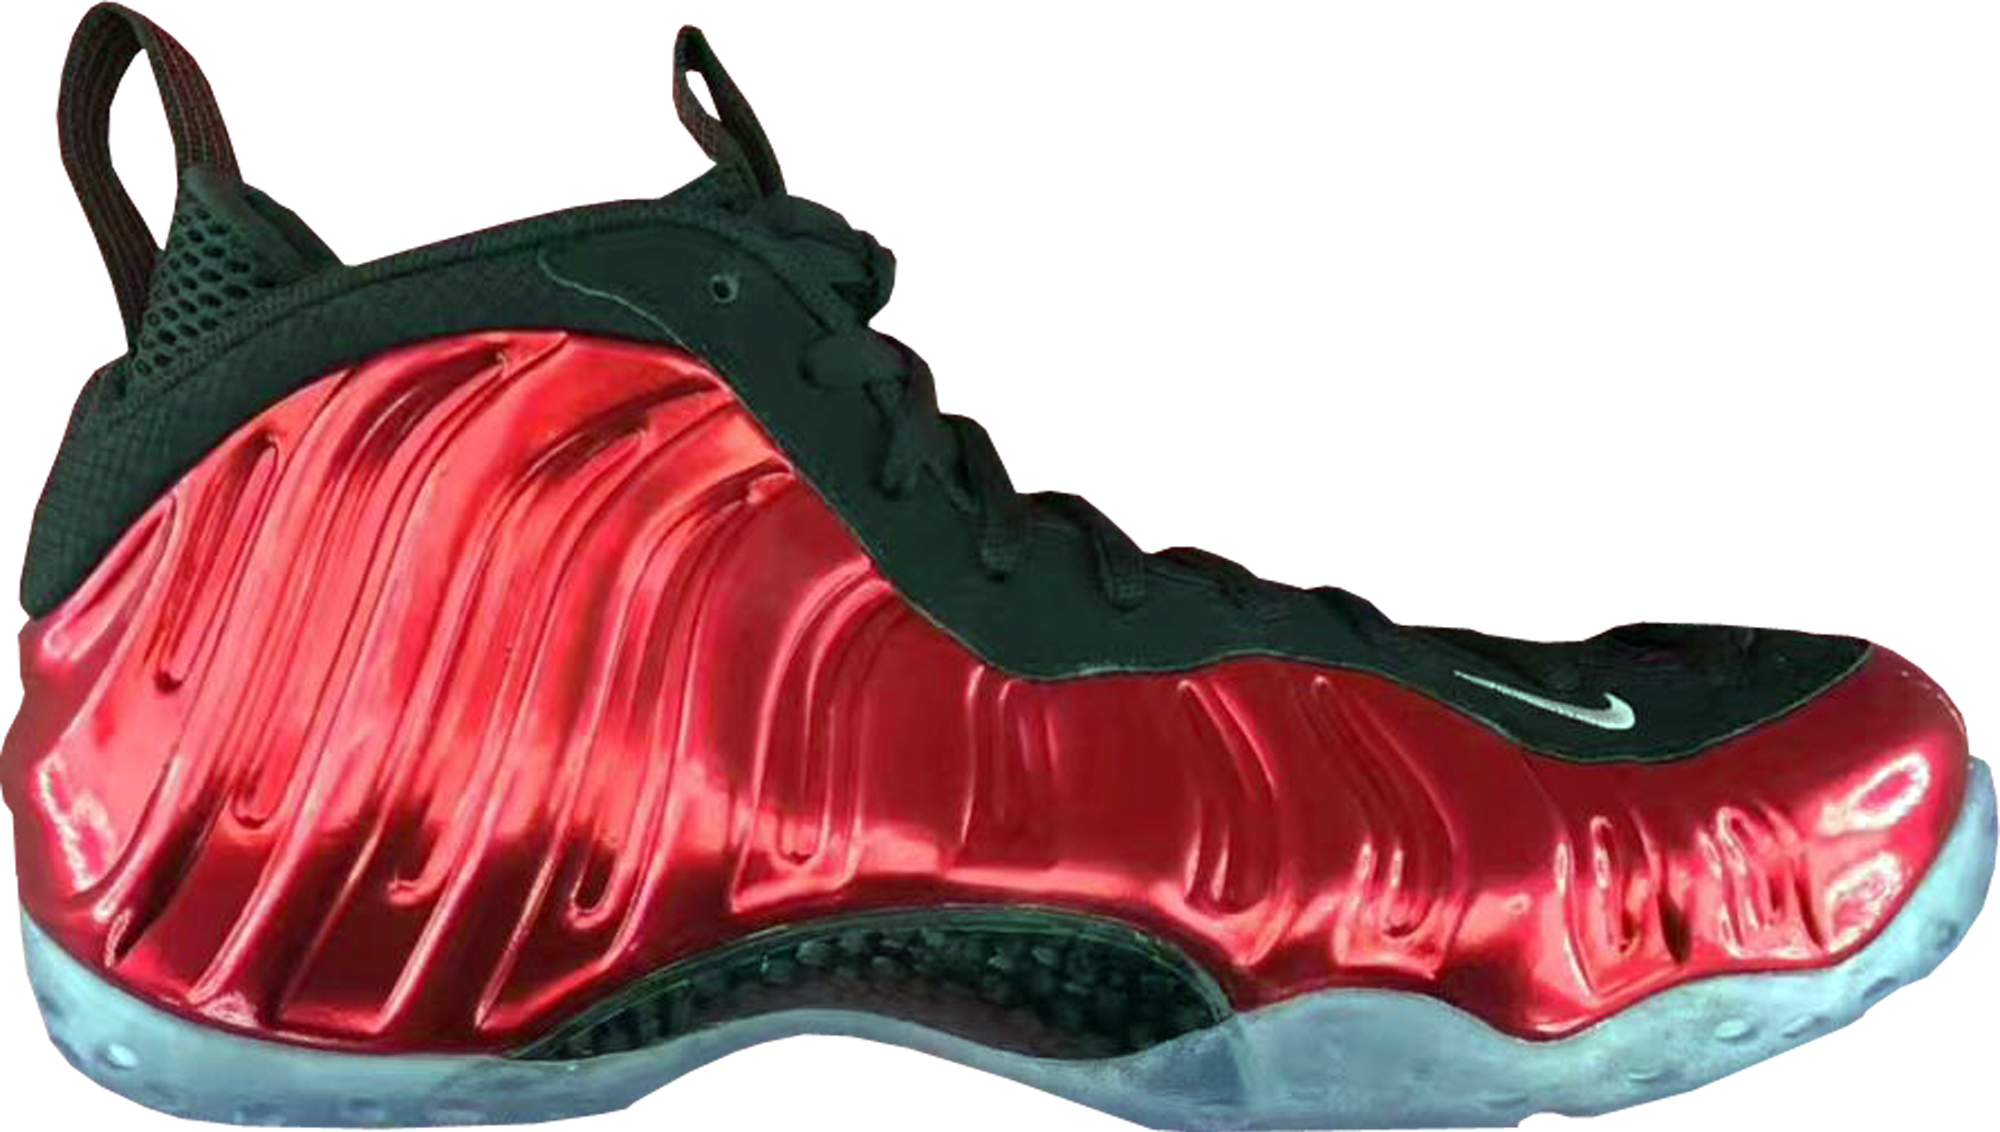 san francisco 0b15f c42c0 Nike Air Foamposite One Varsity Red 2017 Retro Metallic 20th Anniversary